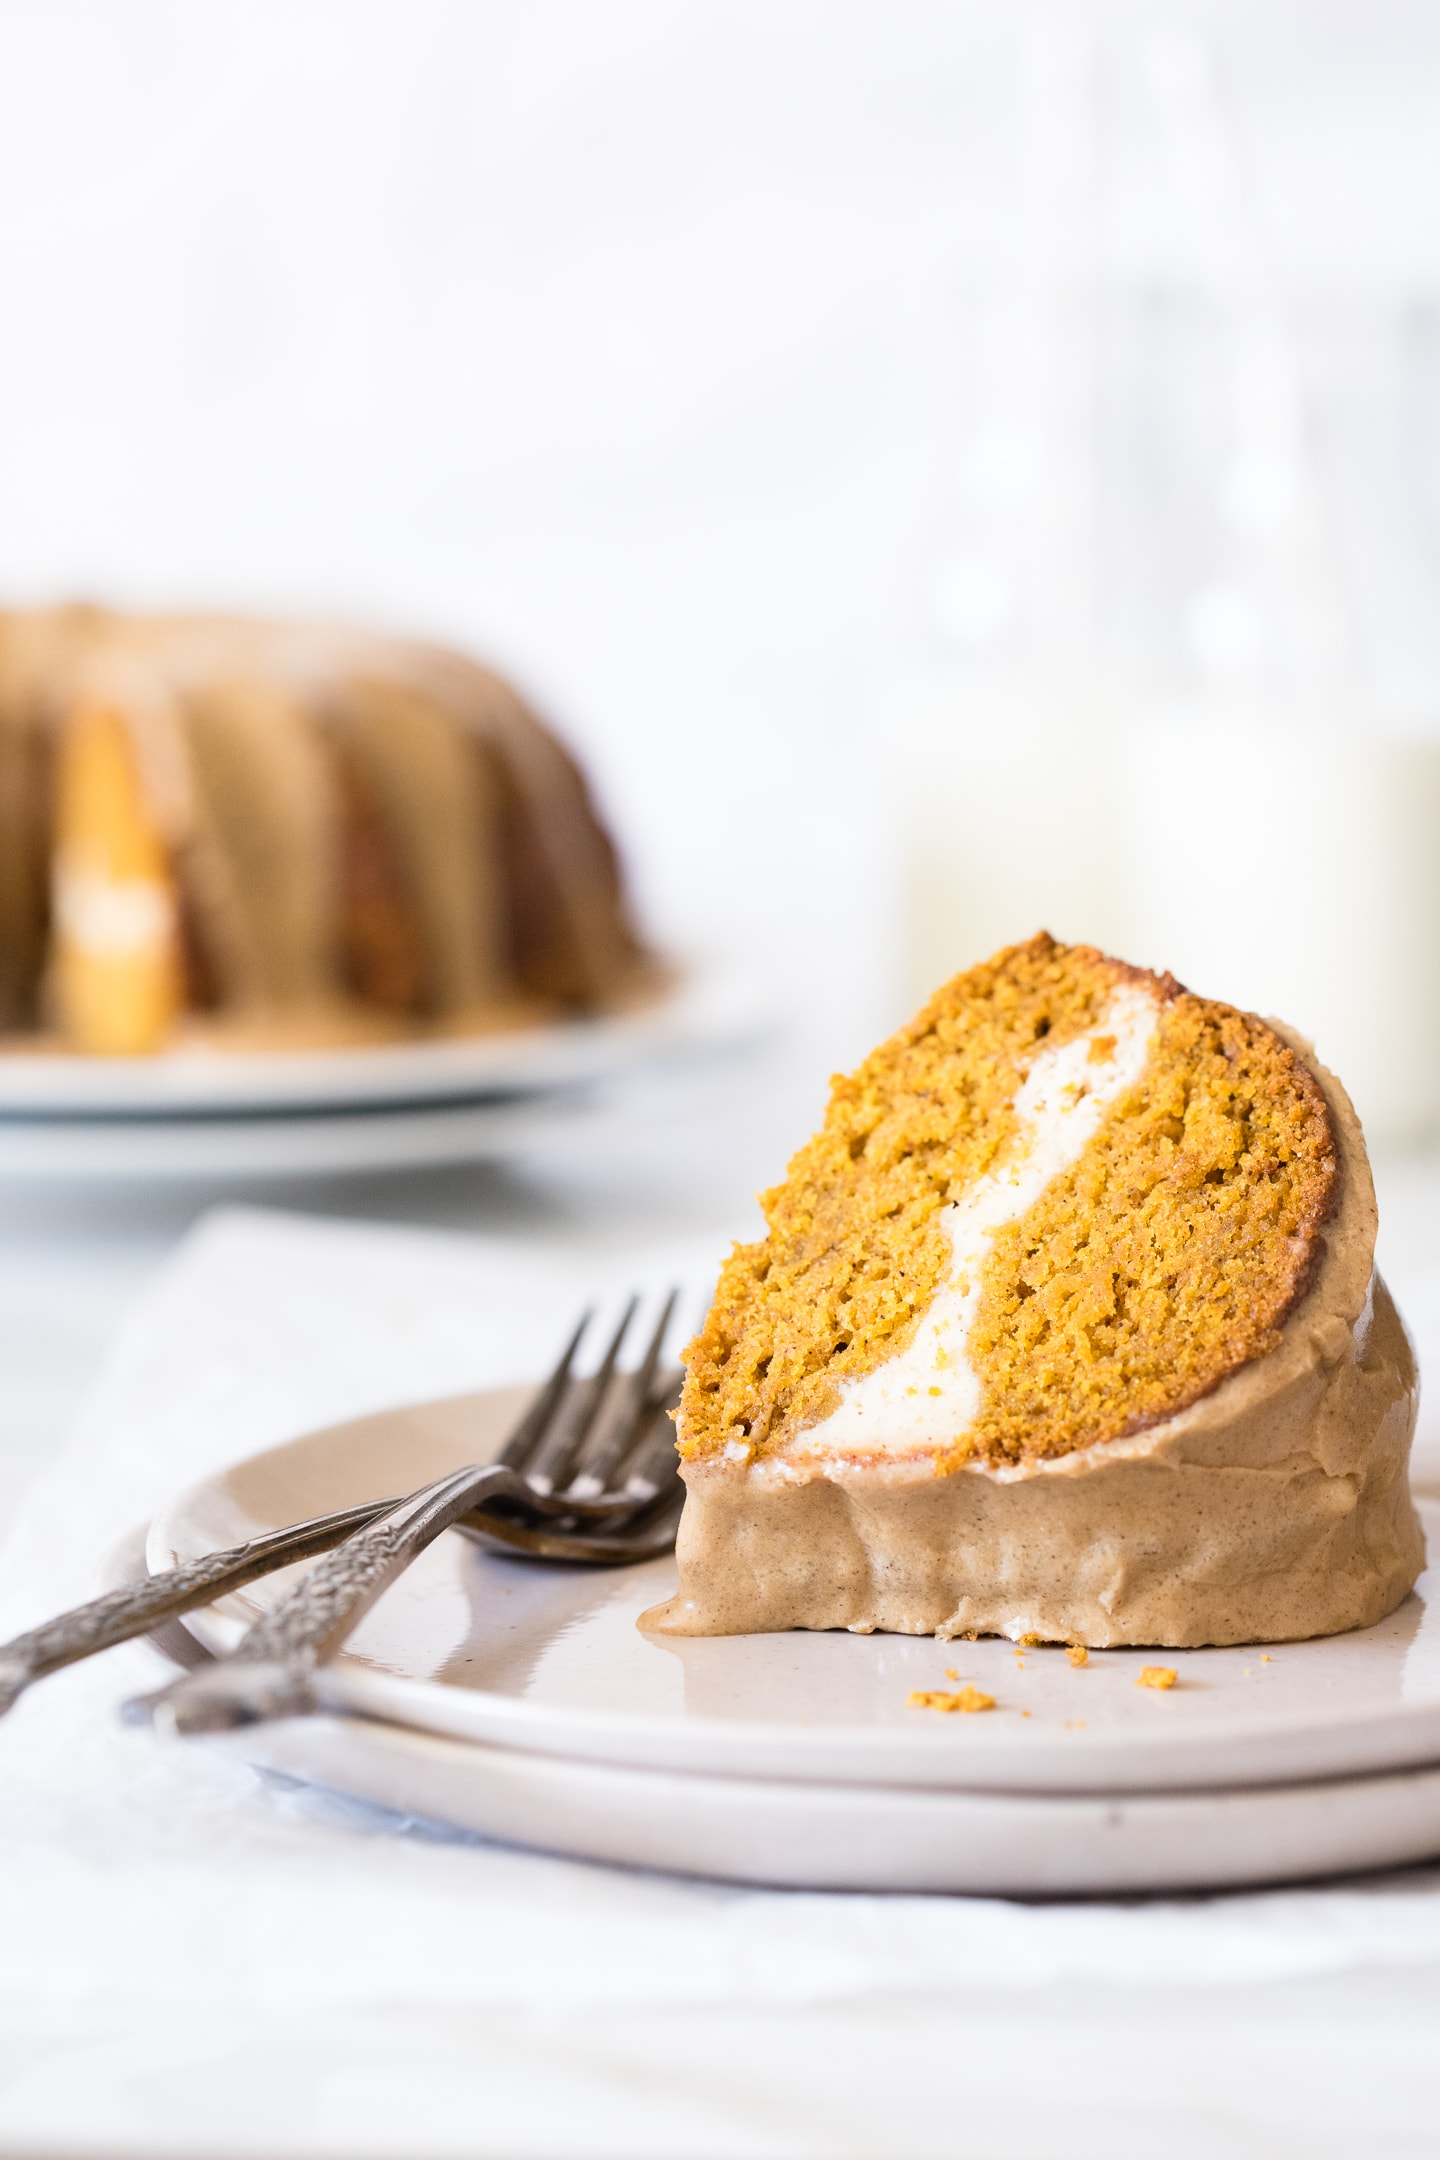 Slice of pumpkin bundt cake on two-stacked plates, with the full cake and a glass of milk in the background.